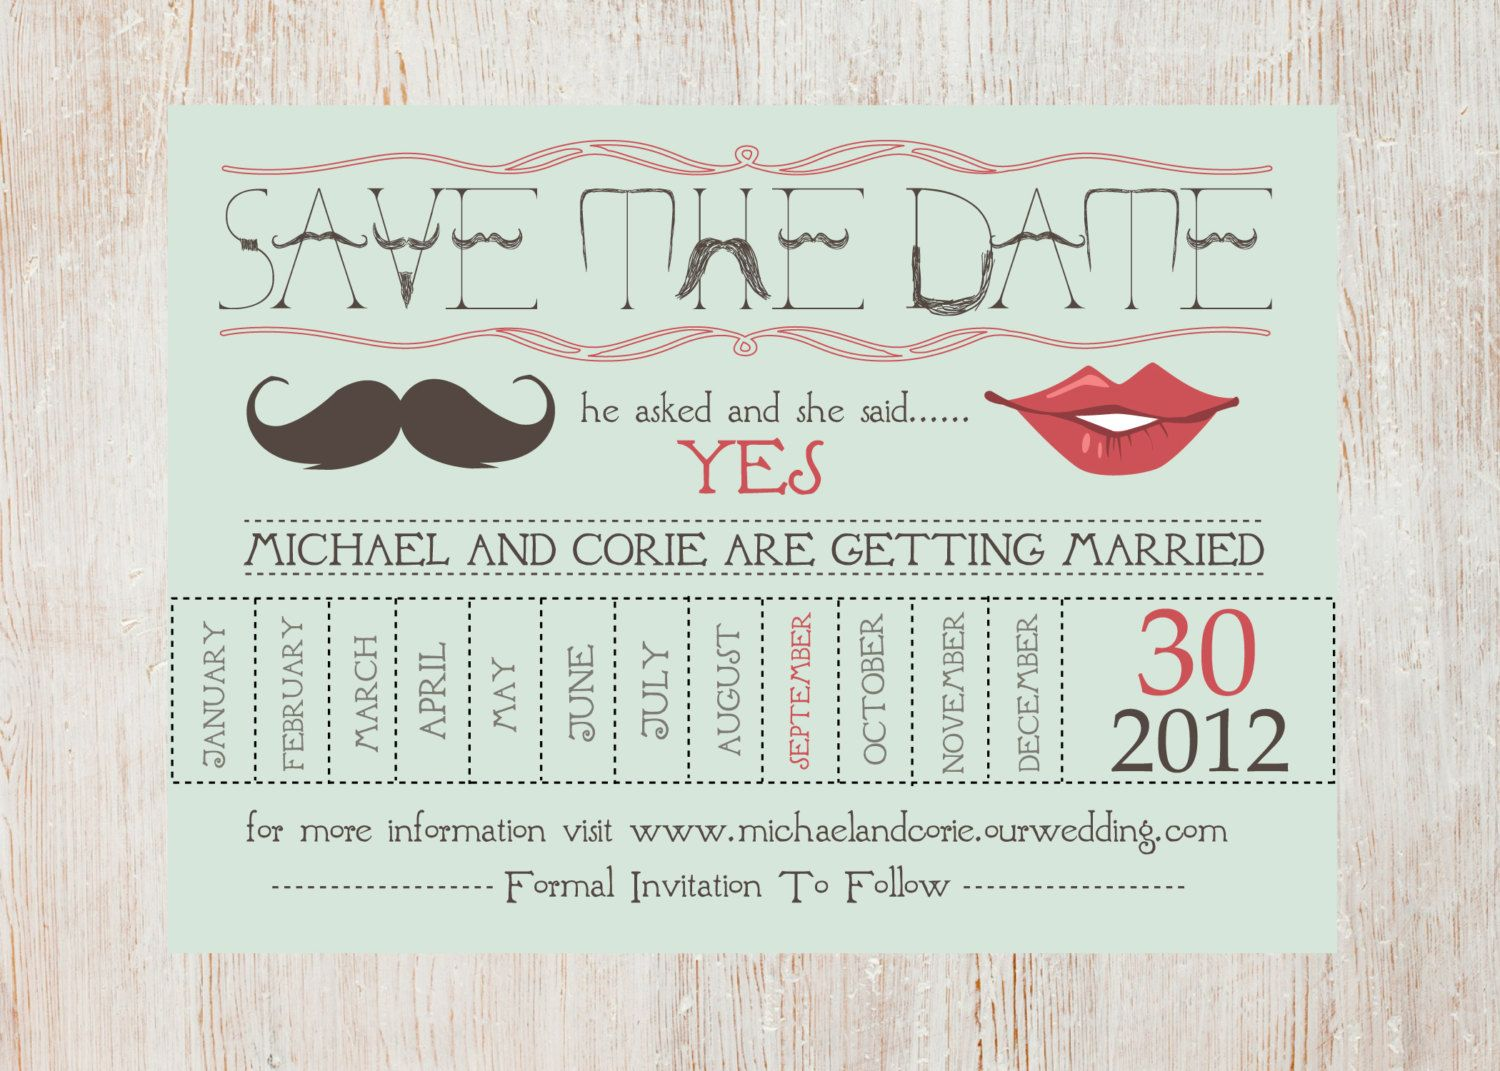 unique wedding invitations | Inspiration from gallery "|1500|1071|?|en|2|f6fee22a5dd50a41d175226ae7899a0a|False|UNLIKELY|0.3068426549434662